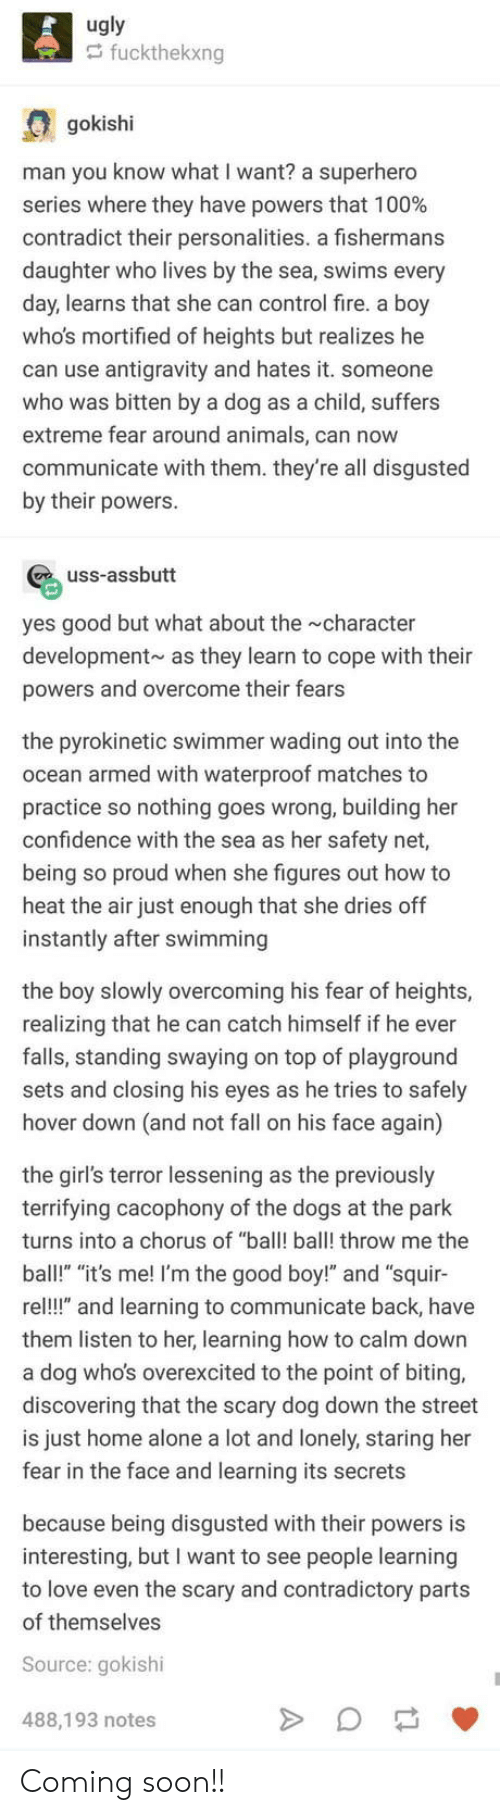 """swimmer: ugly  fuckthekxng  gokishi  man you know what I want? a superhero  series where they have powers that 100%  contradict their personalities. a fishermans  daughter who lives by the sea, swims every  day, learns that she can control fire. a boy  whos mortified of heights but realizes he  can use antigravity and hates it. someone  who was bitten by a dog as a child, suffers  extreme fear around animals, can now  communicate with them. they're all disgusted  by their powers.  uss-assbutt  yes good but what about the character  development as they learn to cope with their  powers and overcome their fears  the pyrokinetic swimmer wading out into the  ocean armed with waterproof matches to  practice so nothing goes wrong, building her  confidence with the sea as her safety net,  being so proud when she figures out how to  heat the air just enough that she dries off  instantly after swimming  the boy slowly overcoming his fear of heights,  realizing that he can catch himself if he ever  falls, standing swaying on top of playground  sets and closing his eyes as he tries to safely  hover down (and not fall on his face again)  the girl's terror lessening as the previously  terrifying cacophony of the dogs at the park  turns into a chorus of ba ball! throw me the  ball!"""" """"it's me! I'm the good boy!"""" and """"squir-  re!!"""" and learning to communicate back, have  them listen to her, learning how to calm down  a dog who's overexcited to the point of biting,  discovering that the scary dog down the street  is just home alone a lot and lonely, staring her  fear in the face and learning its secrets  because being disgusted with their powers is  interesting, but I want to see people learning  to love even the scary and contradictory parts  of themselves  Source: gokishi  488,193 notes Coming soon!!"""